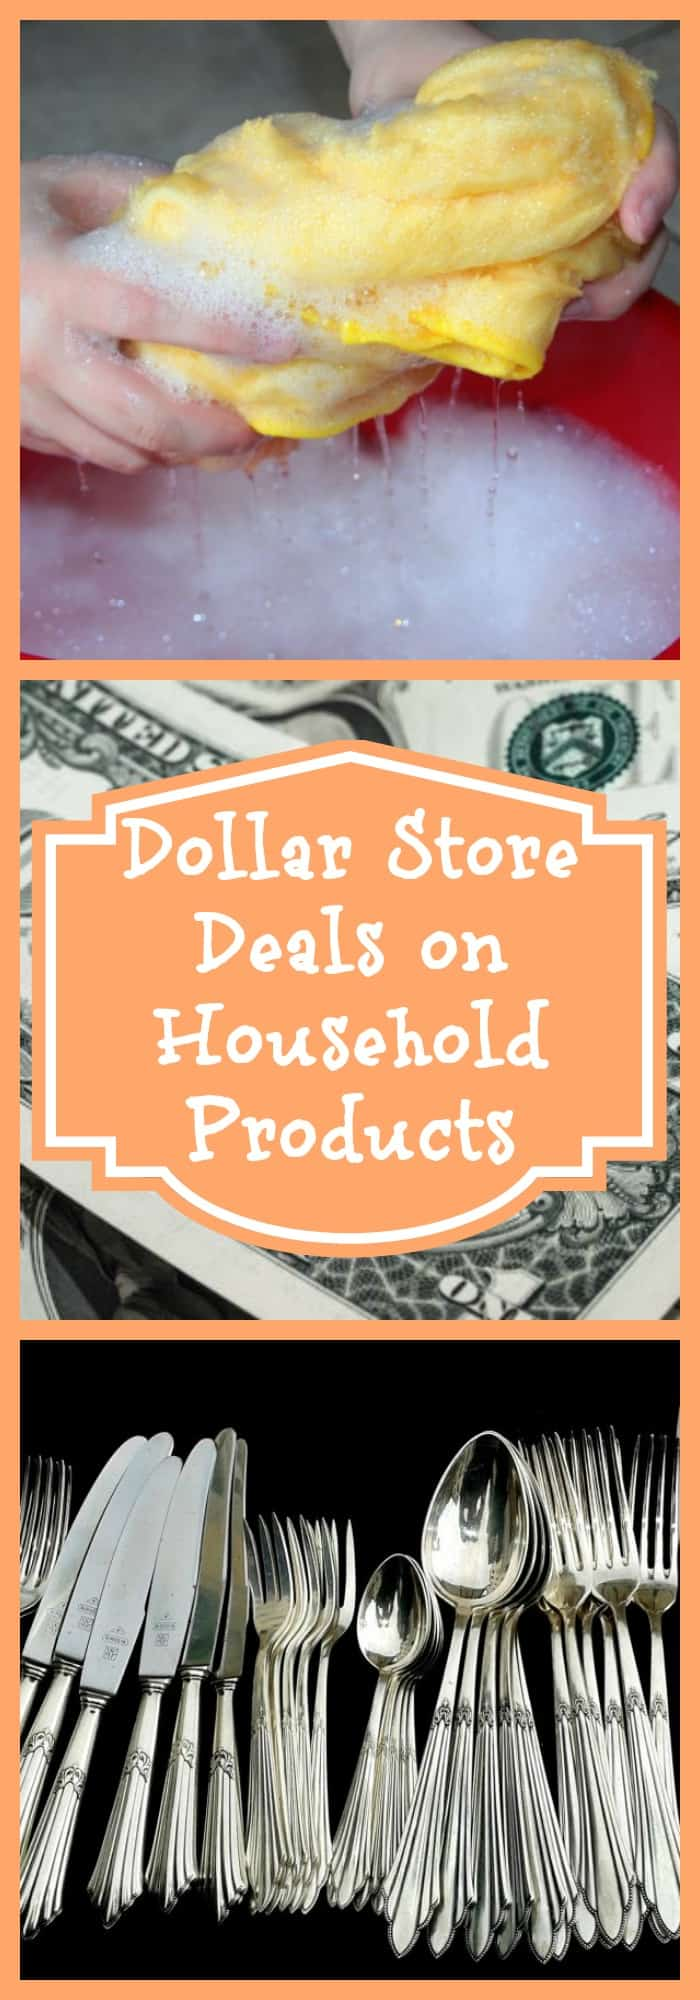 Dollar Store Deals on Household Products